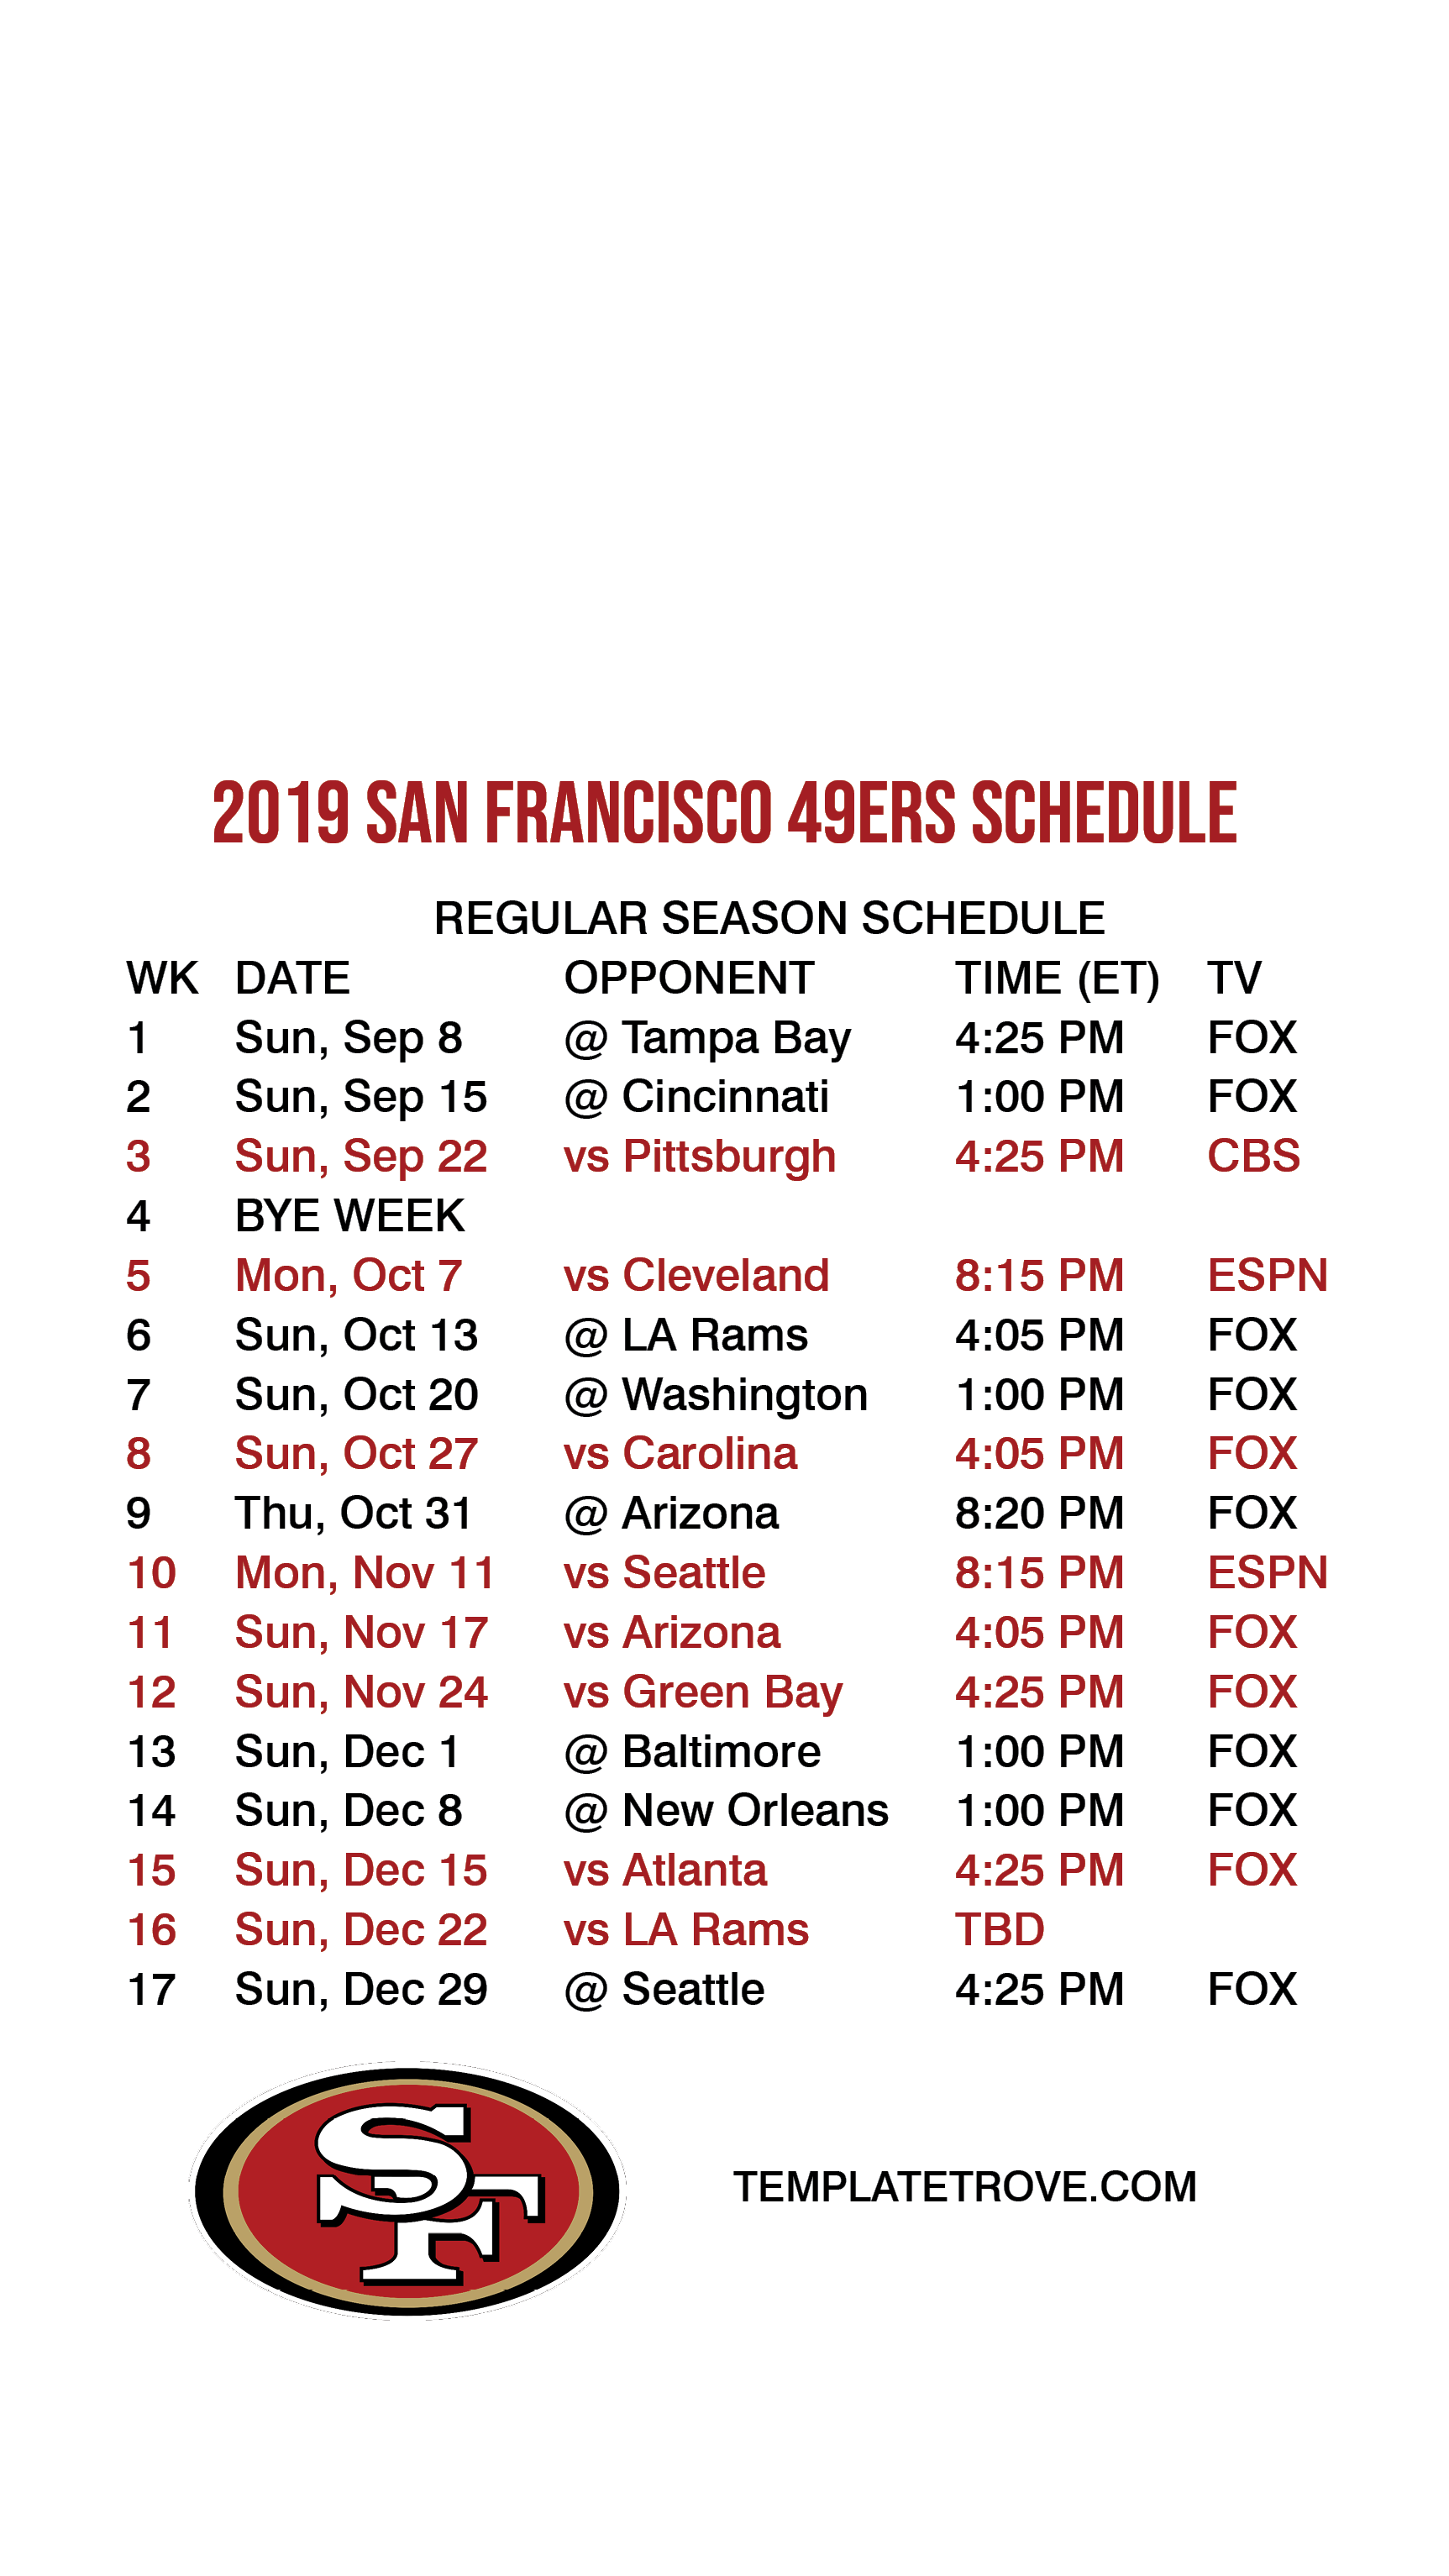 49ers Home Schedule 2020.2019 2020 San Francisco 49ers Lock Screen Schedule For